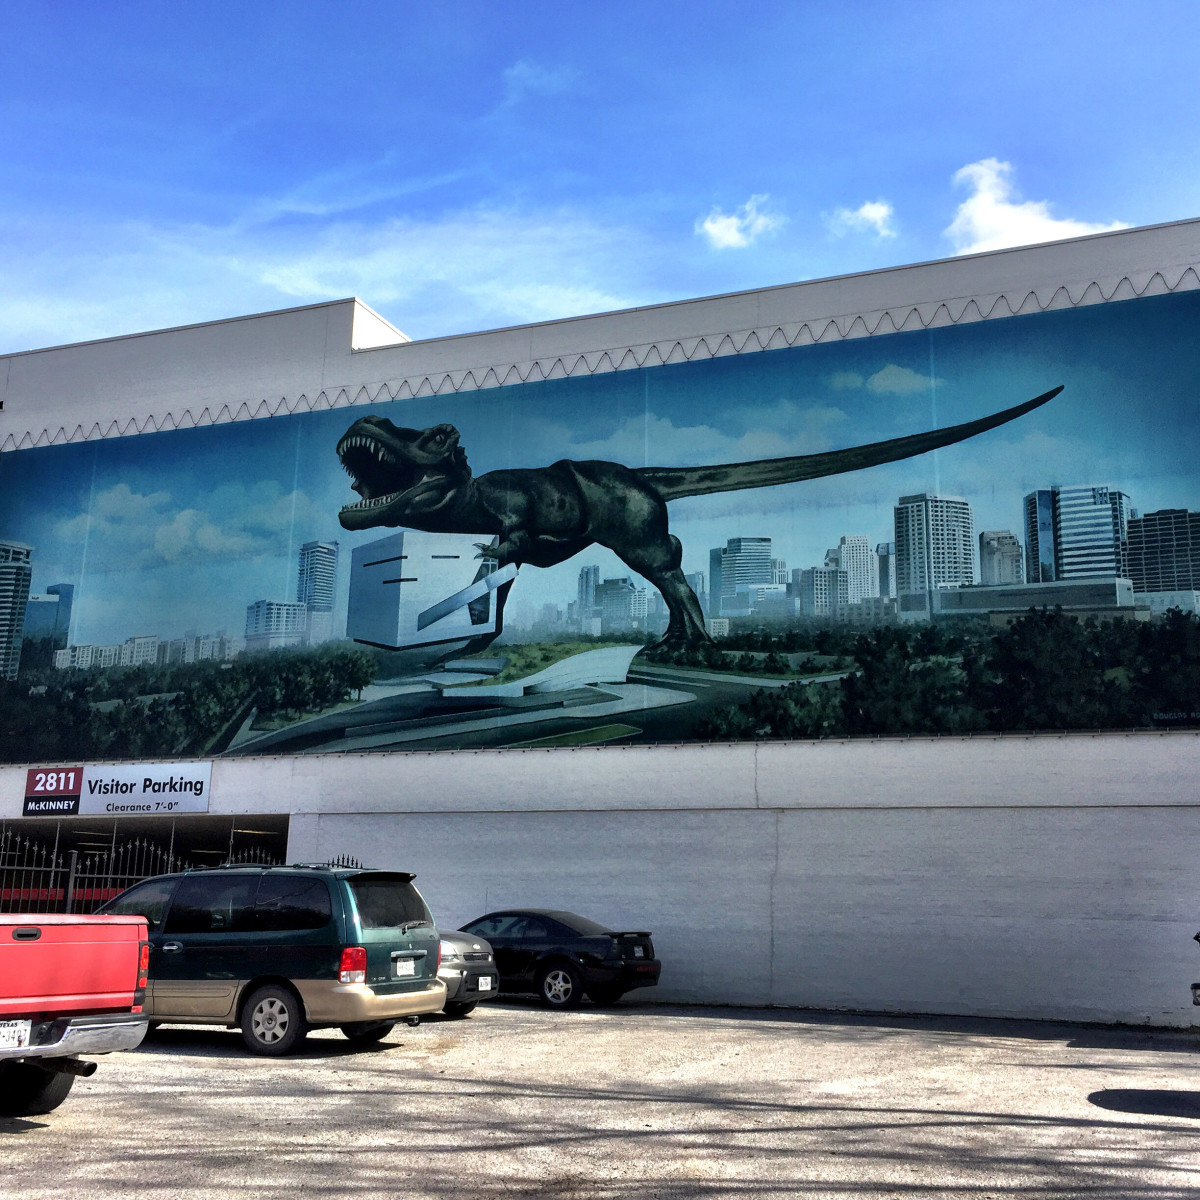 Dinosaur mural in Dallas, artist unknown